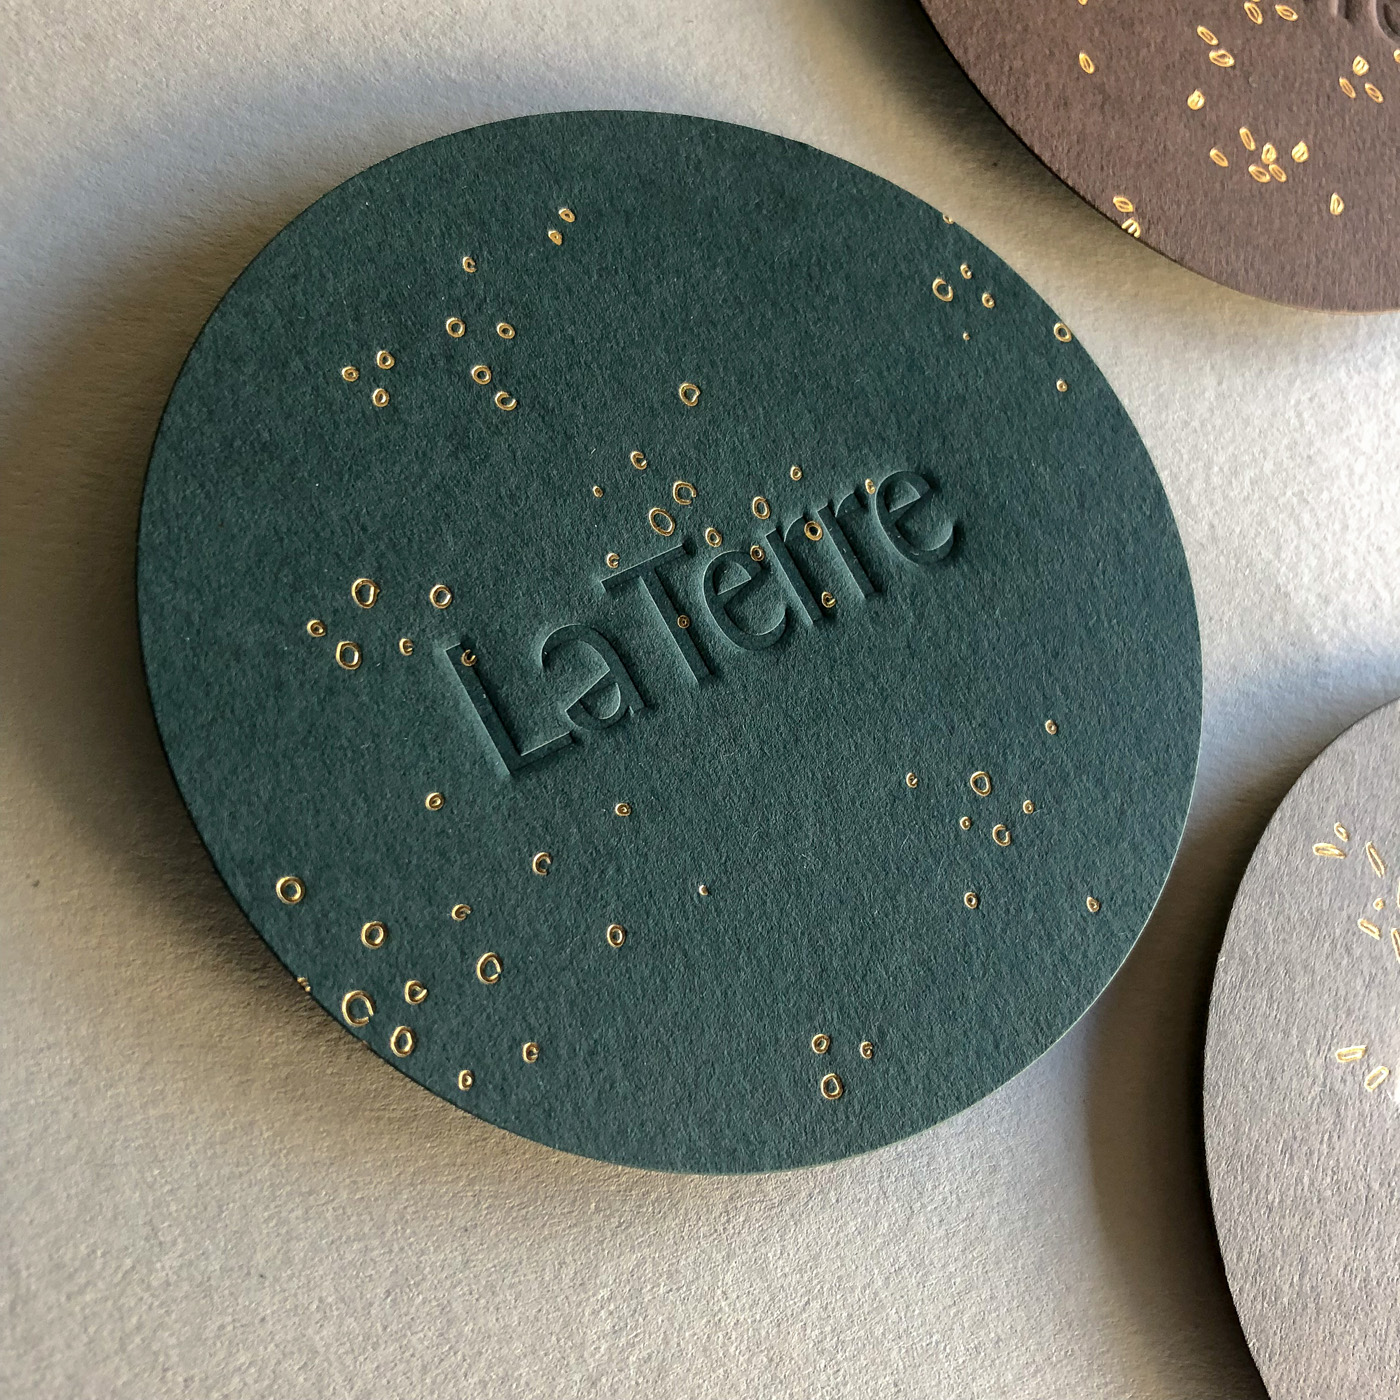 Gold foil printing and letterpress printing on coasters for La Terre on Colorplan 1